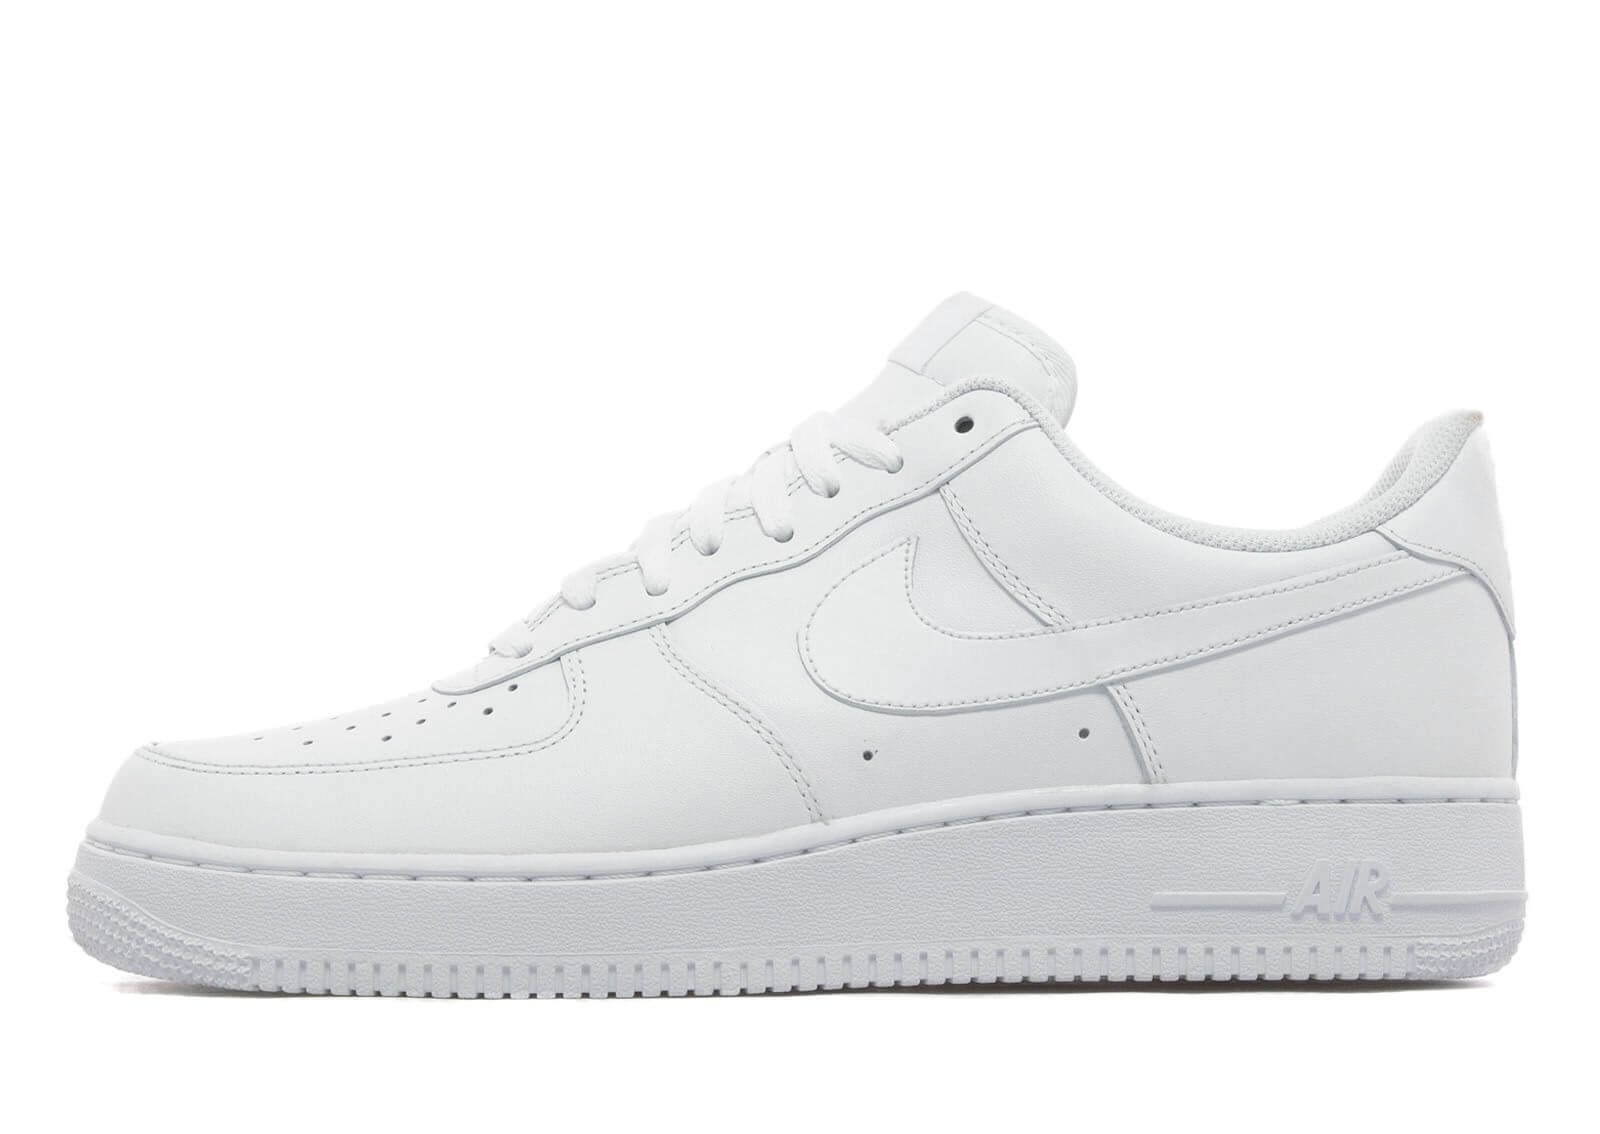 Air Force 1 White shoelaces